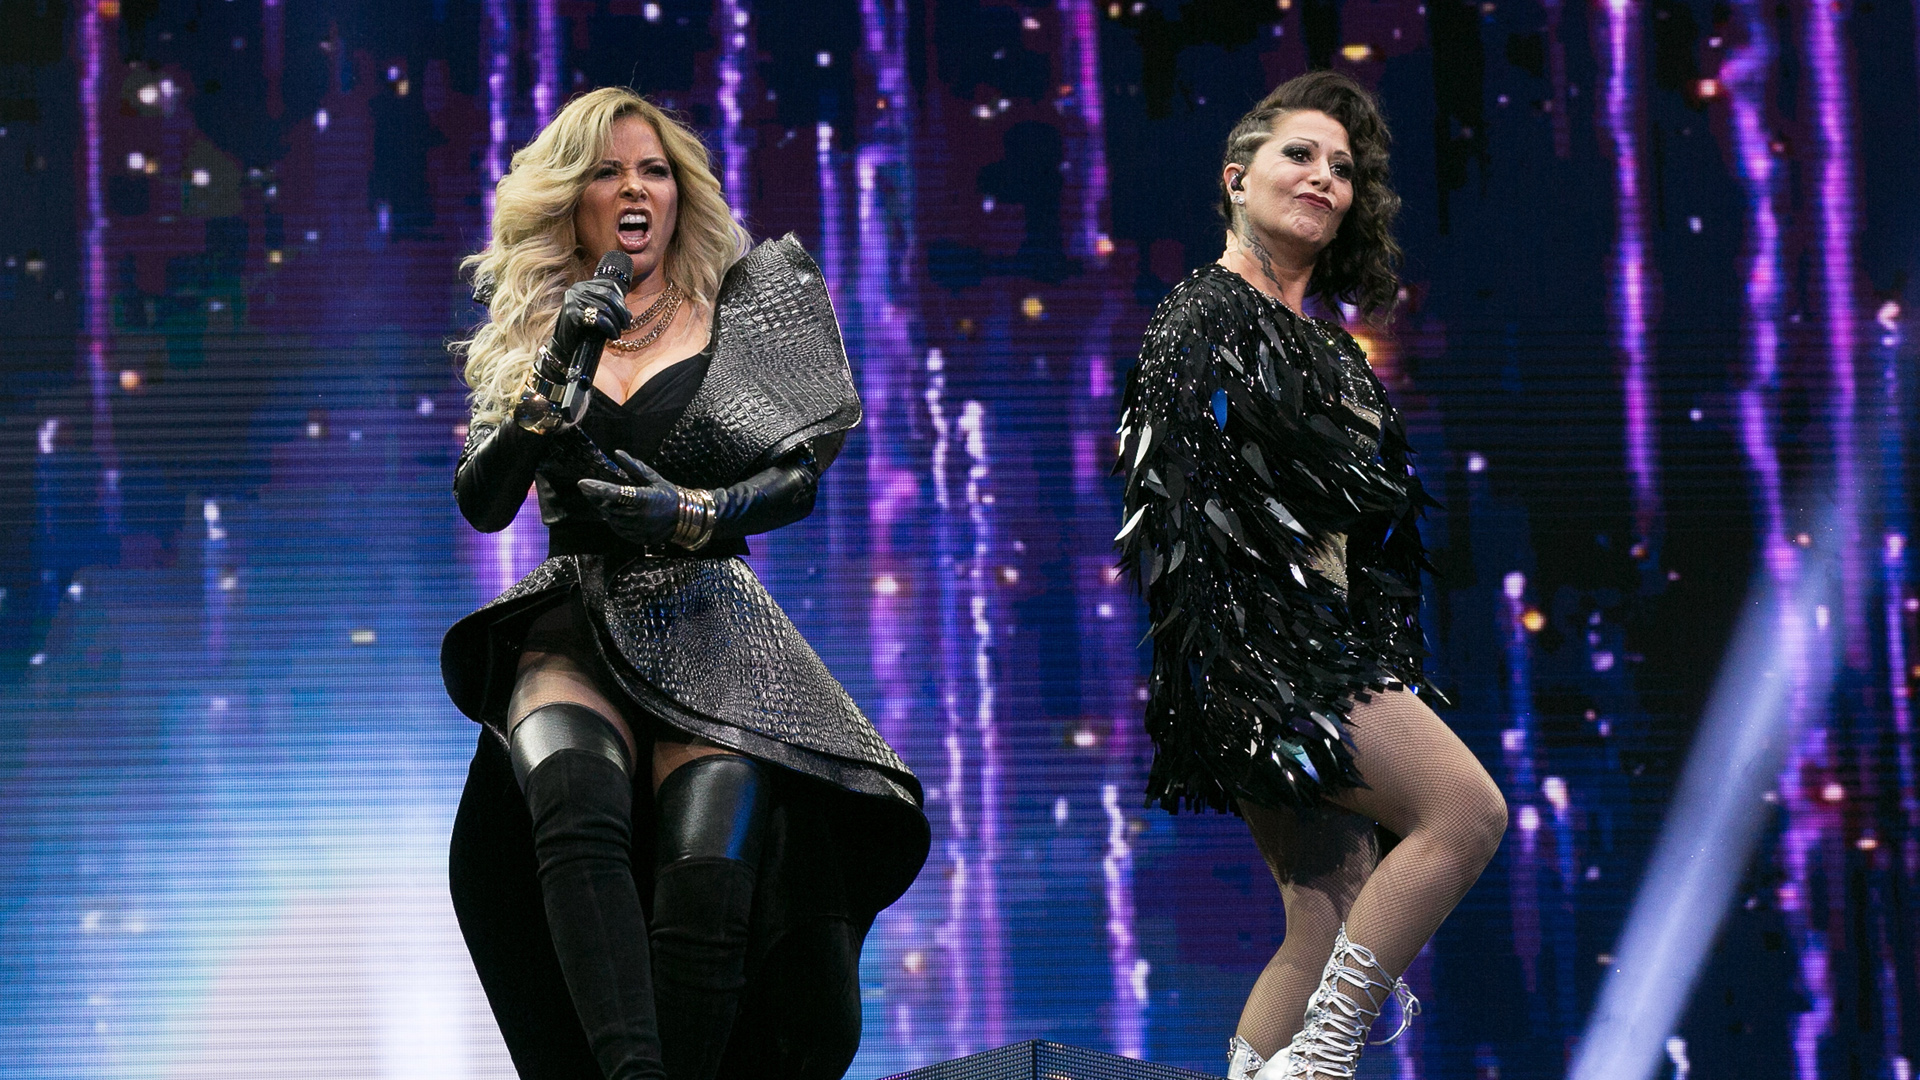 """LOS ANGELES, CA - JUNE 03:  Gloria Trevi (L) and Alejandra Guzman perform at Alejandra Guzman and Gloria Trevi's """"Versus"""" World Tour at Staples Center on June 3, 2017 in Los Angeles, California.  (Photo by Gabriel Olsen/Getty Images)"""